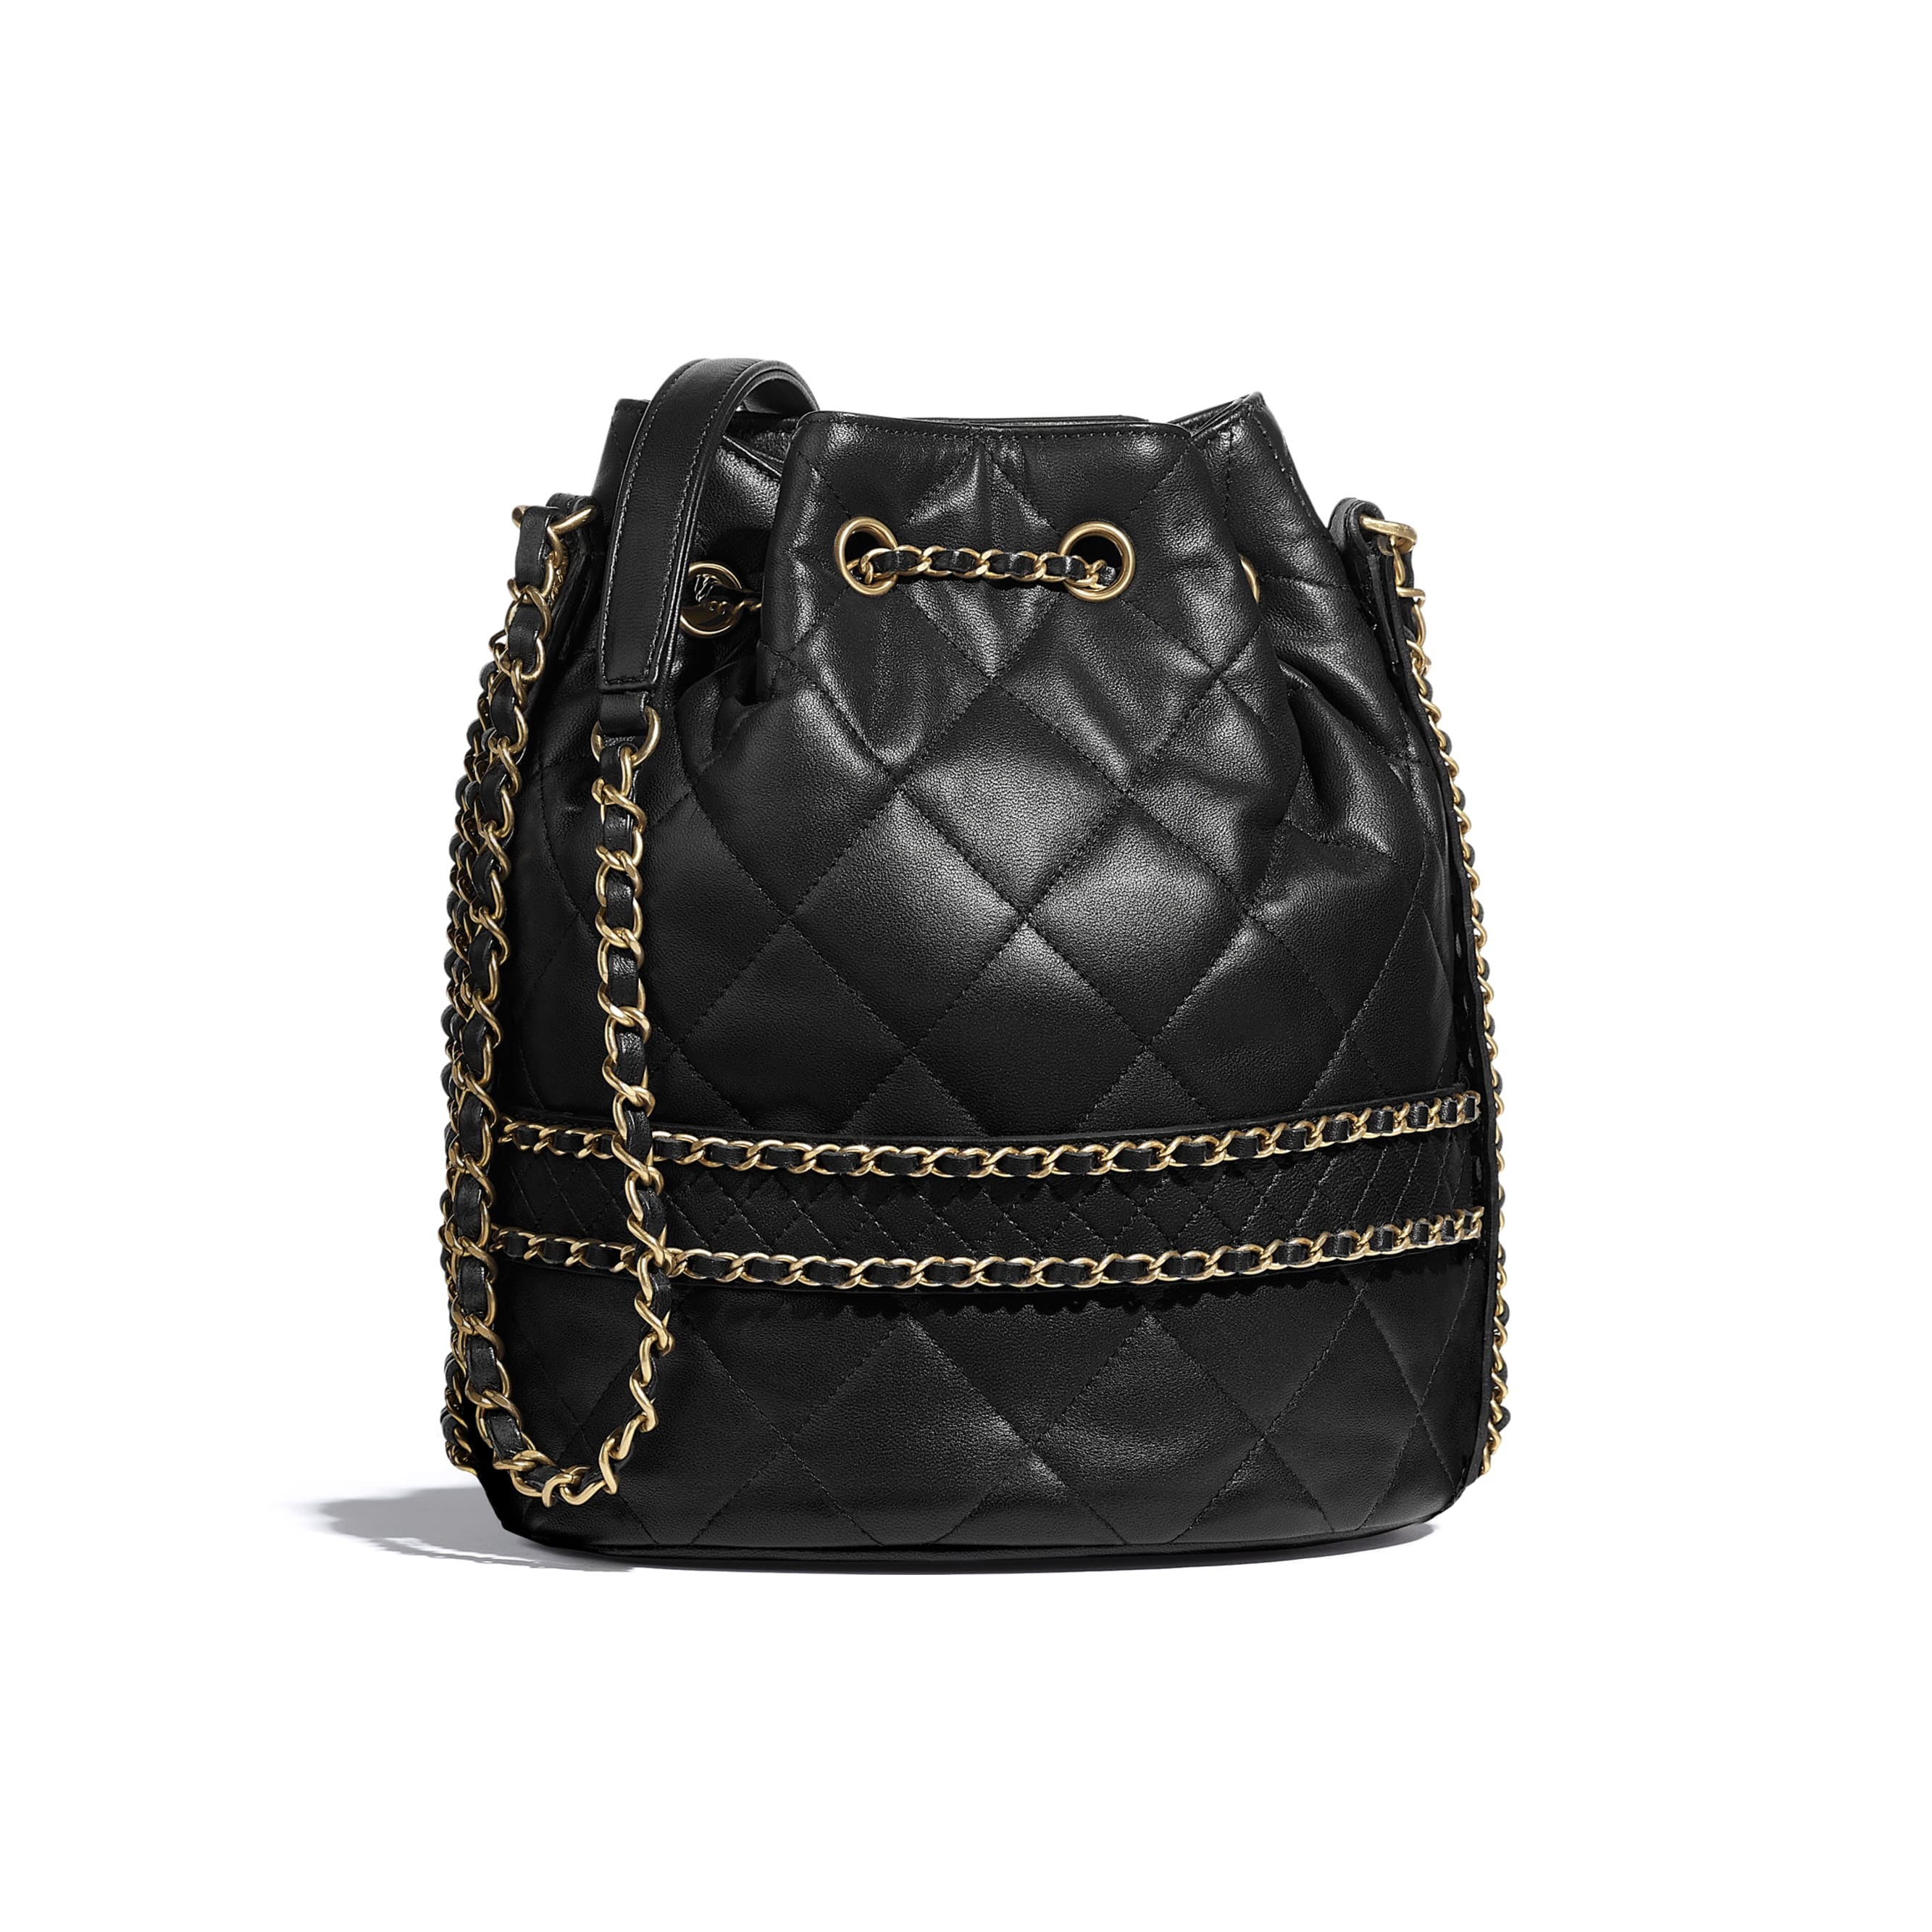 Large Drawstring Bag - Black - Lambskin - CHANEL - Alternative view - see standard sized version